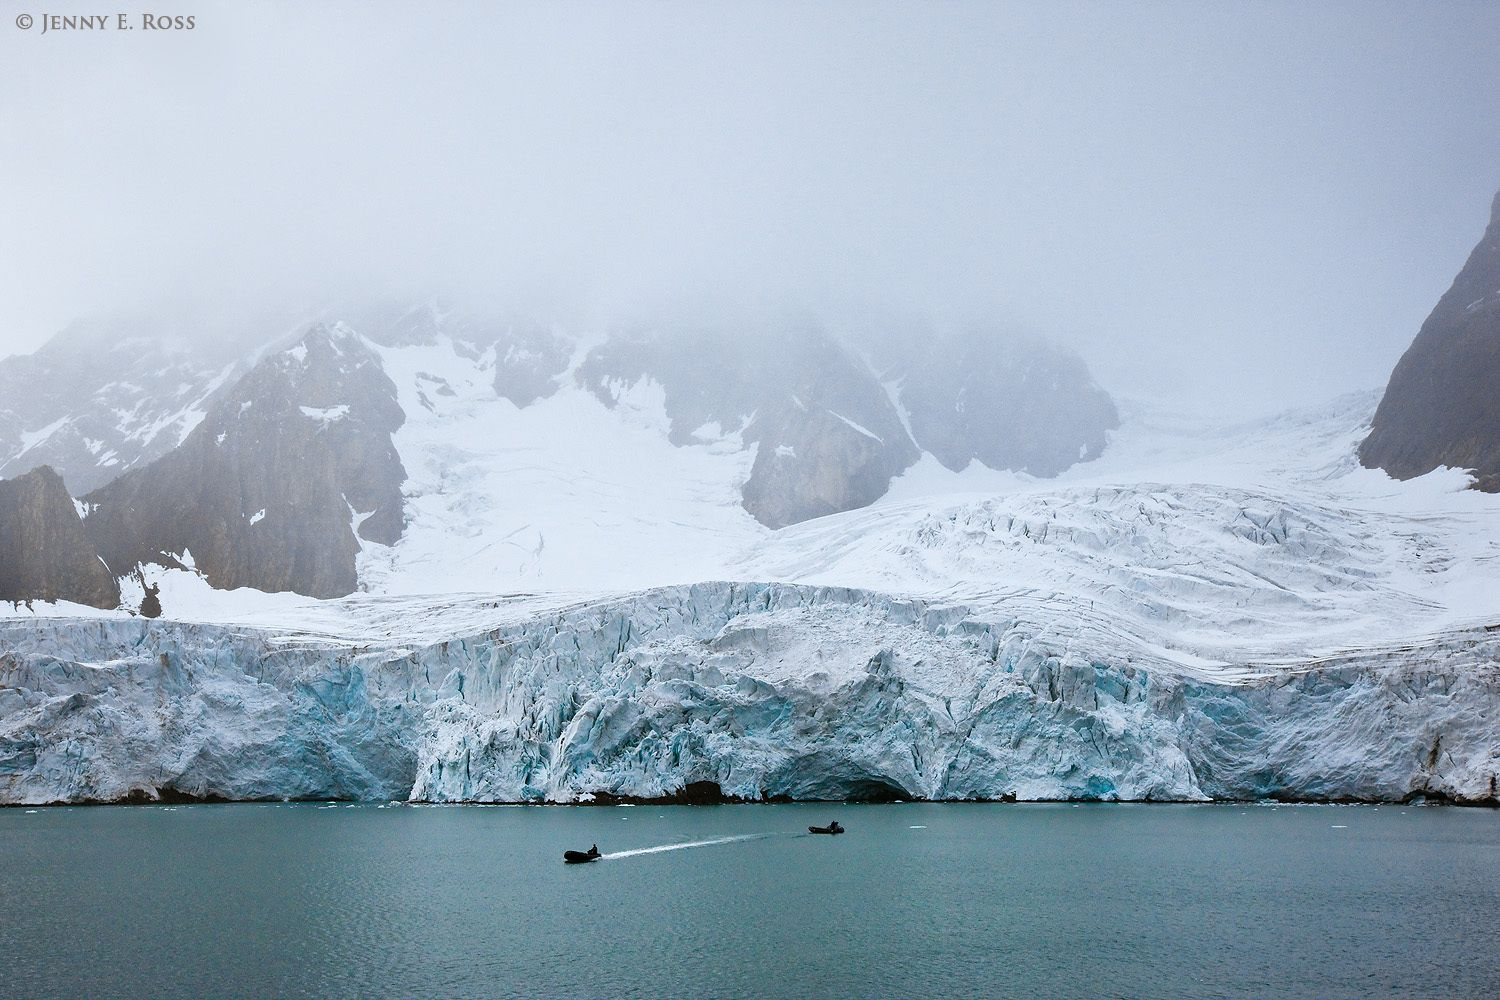 Ecotourism boats (Zodiacs) at Samarinbreen Glacier on Spitsbergen, in the Svalbard Archipelago, Norway.